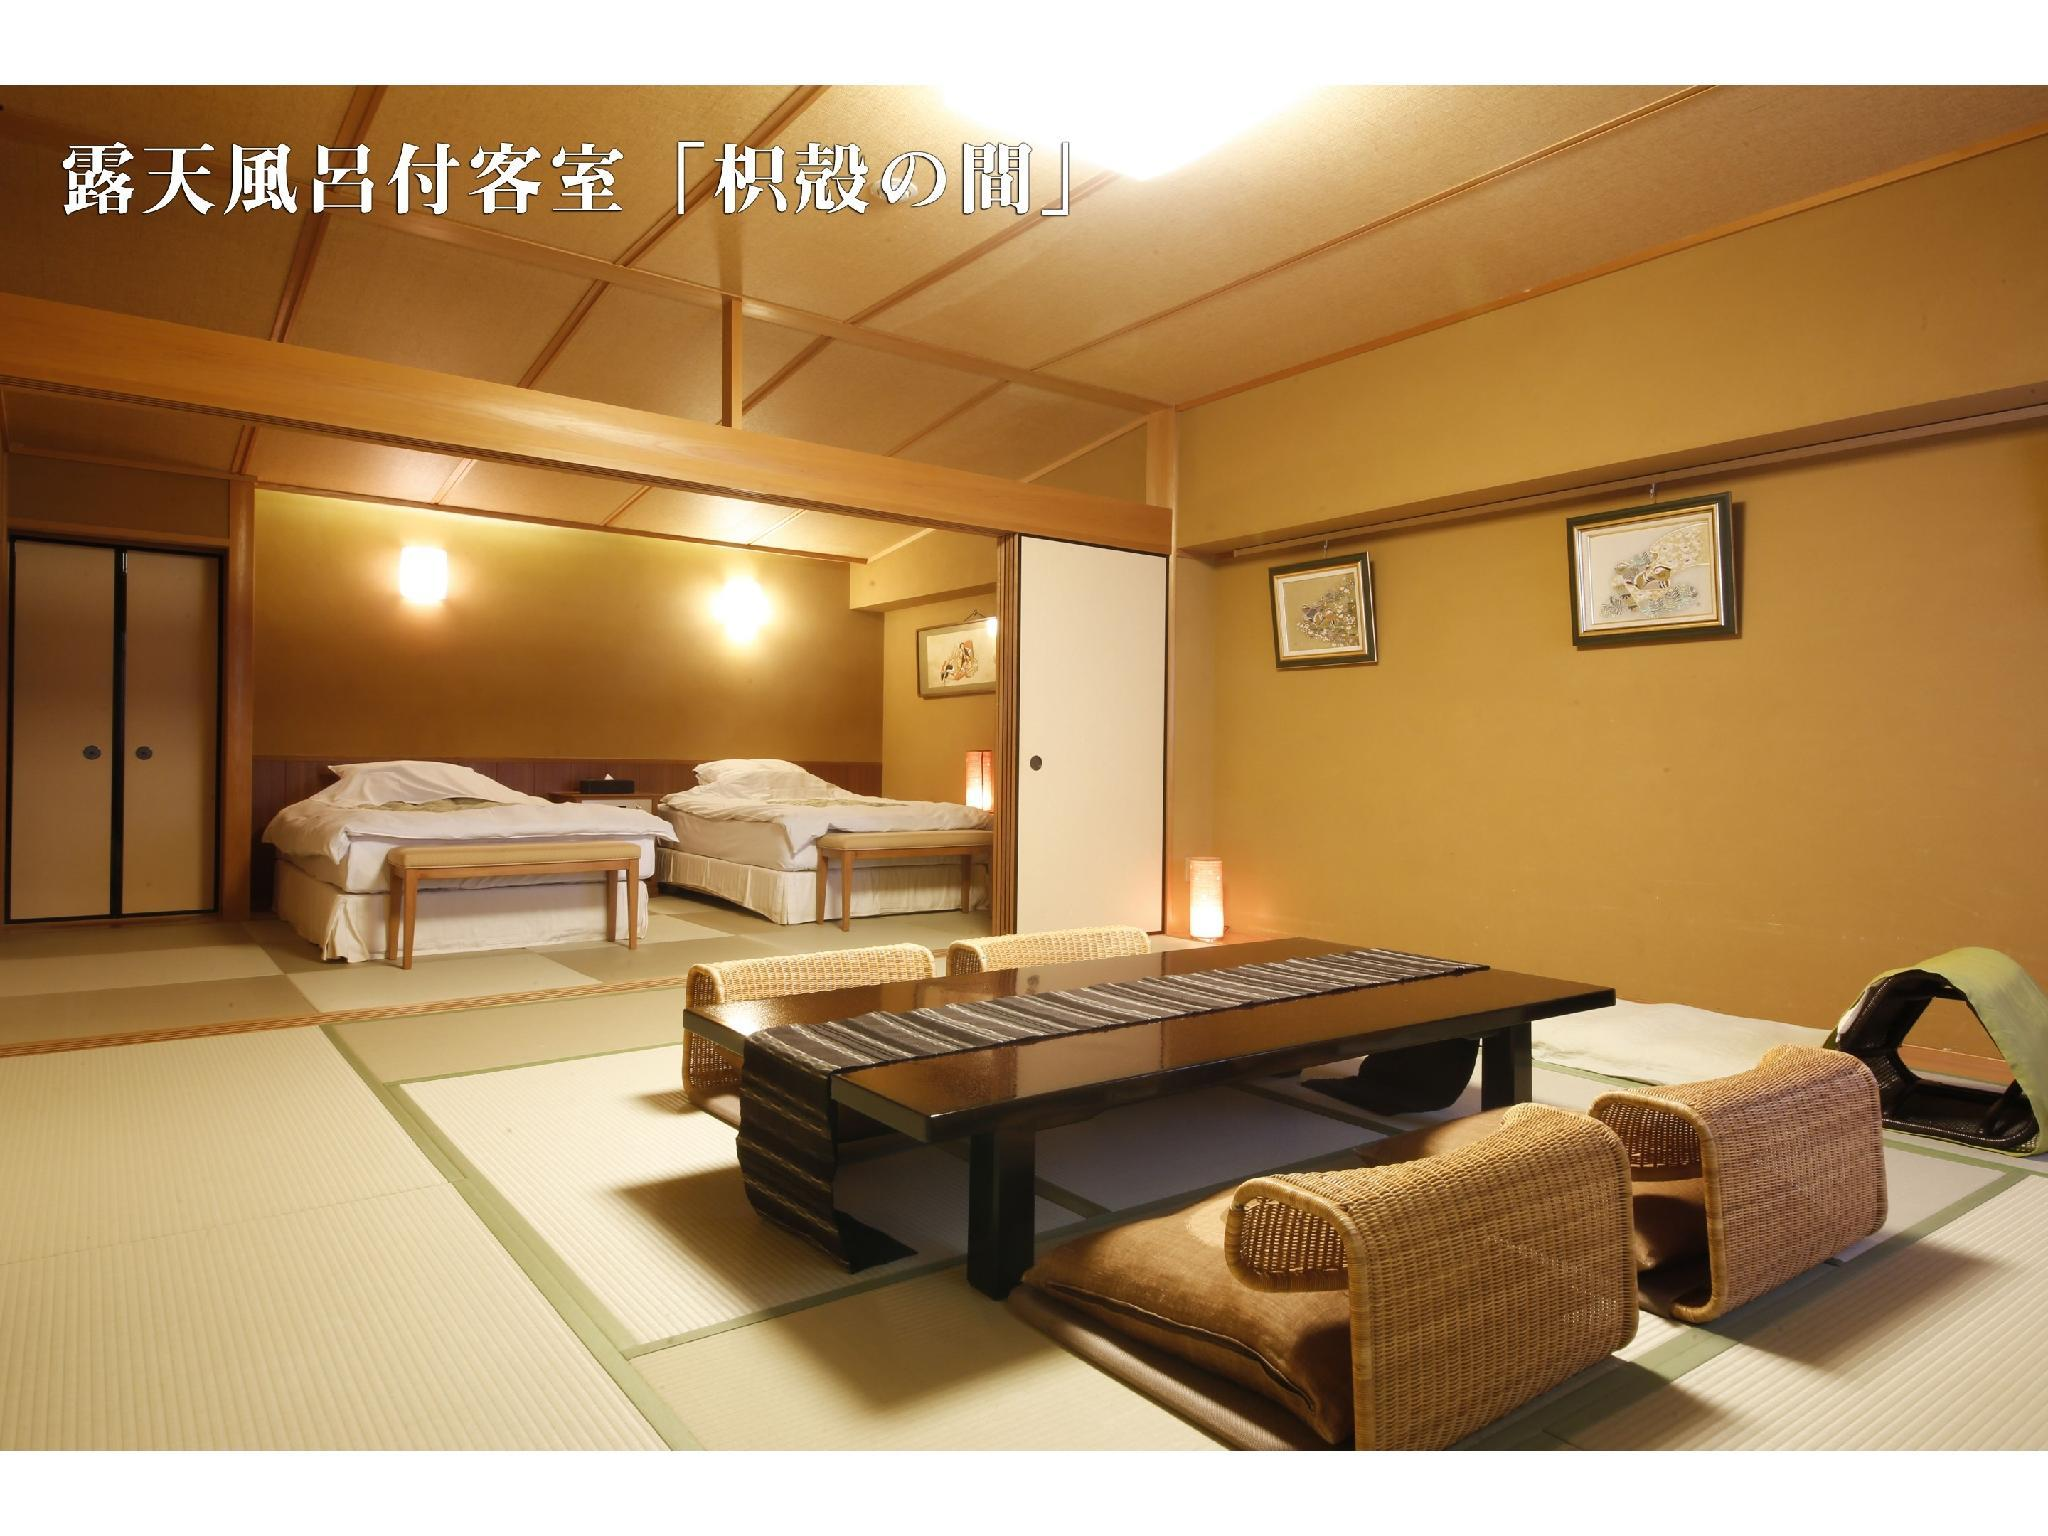 無障礙和洋式套房+溫泉露天風呂 (Japanese/Western-style Suite with Open-air Hot Spring Bath (Barrier Free Type))